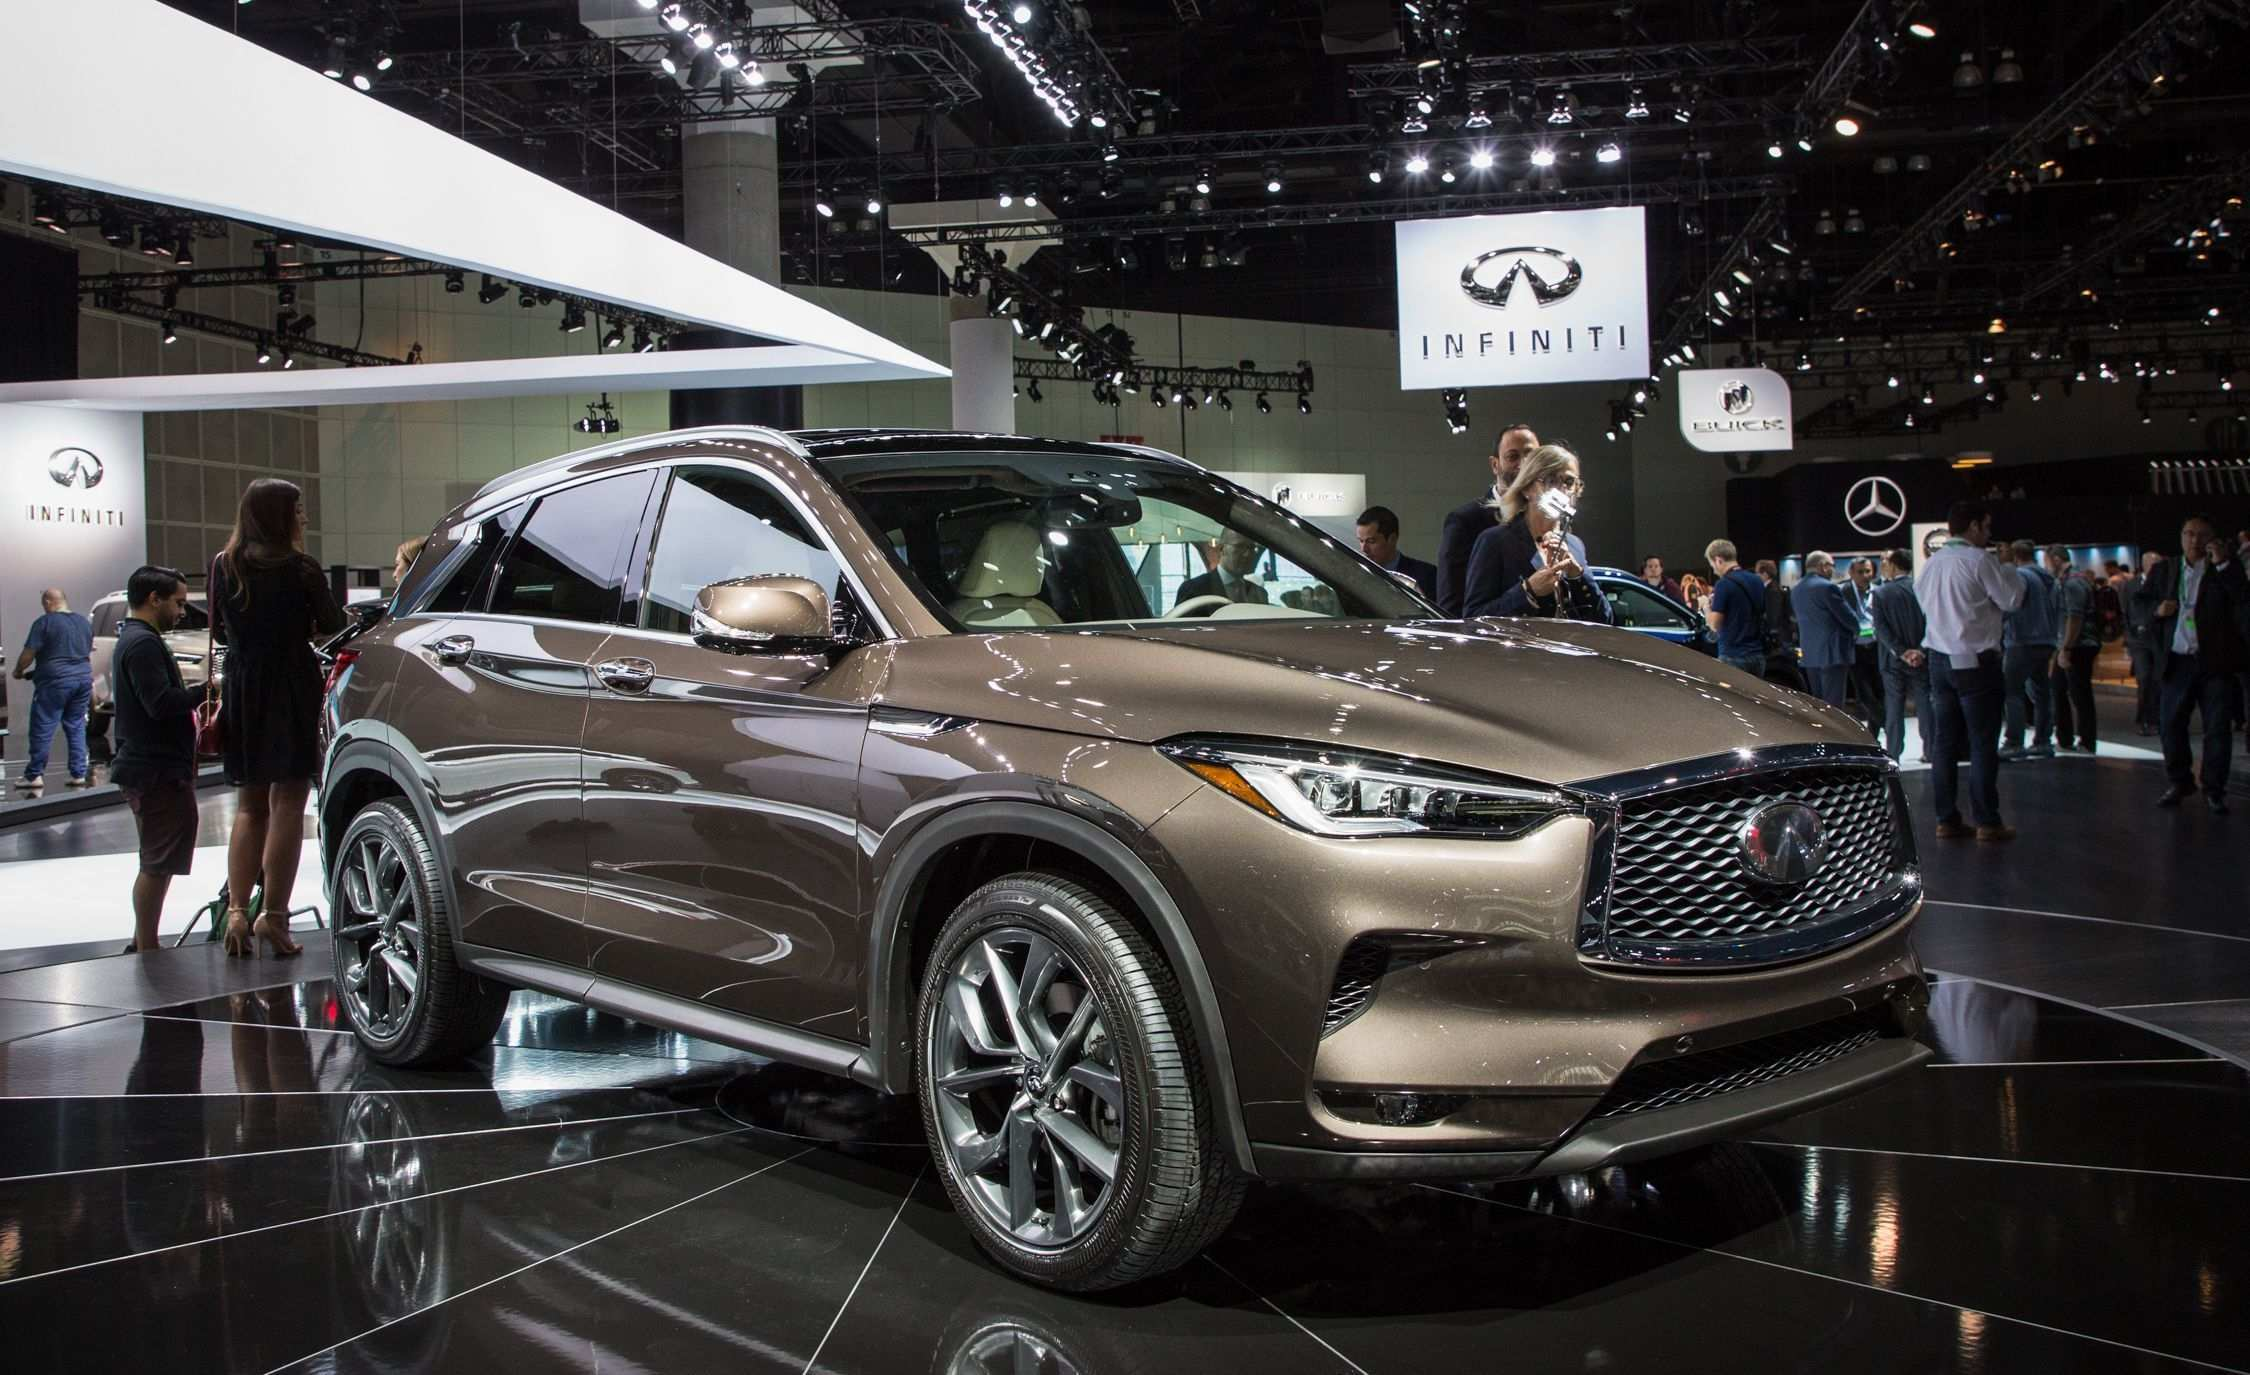 61 All New 2019 Infiniti Truck Price And Review